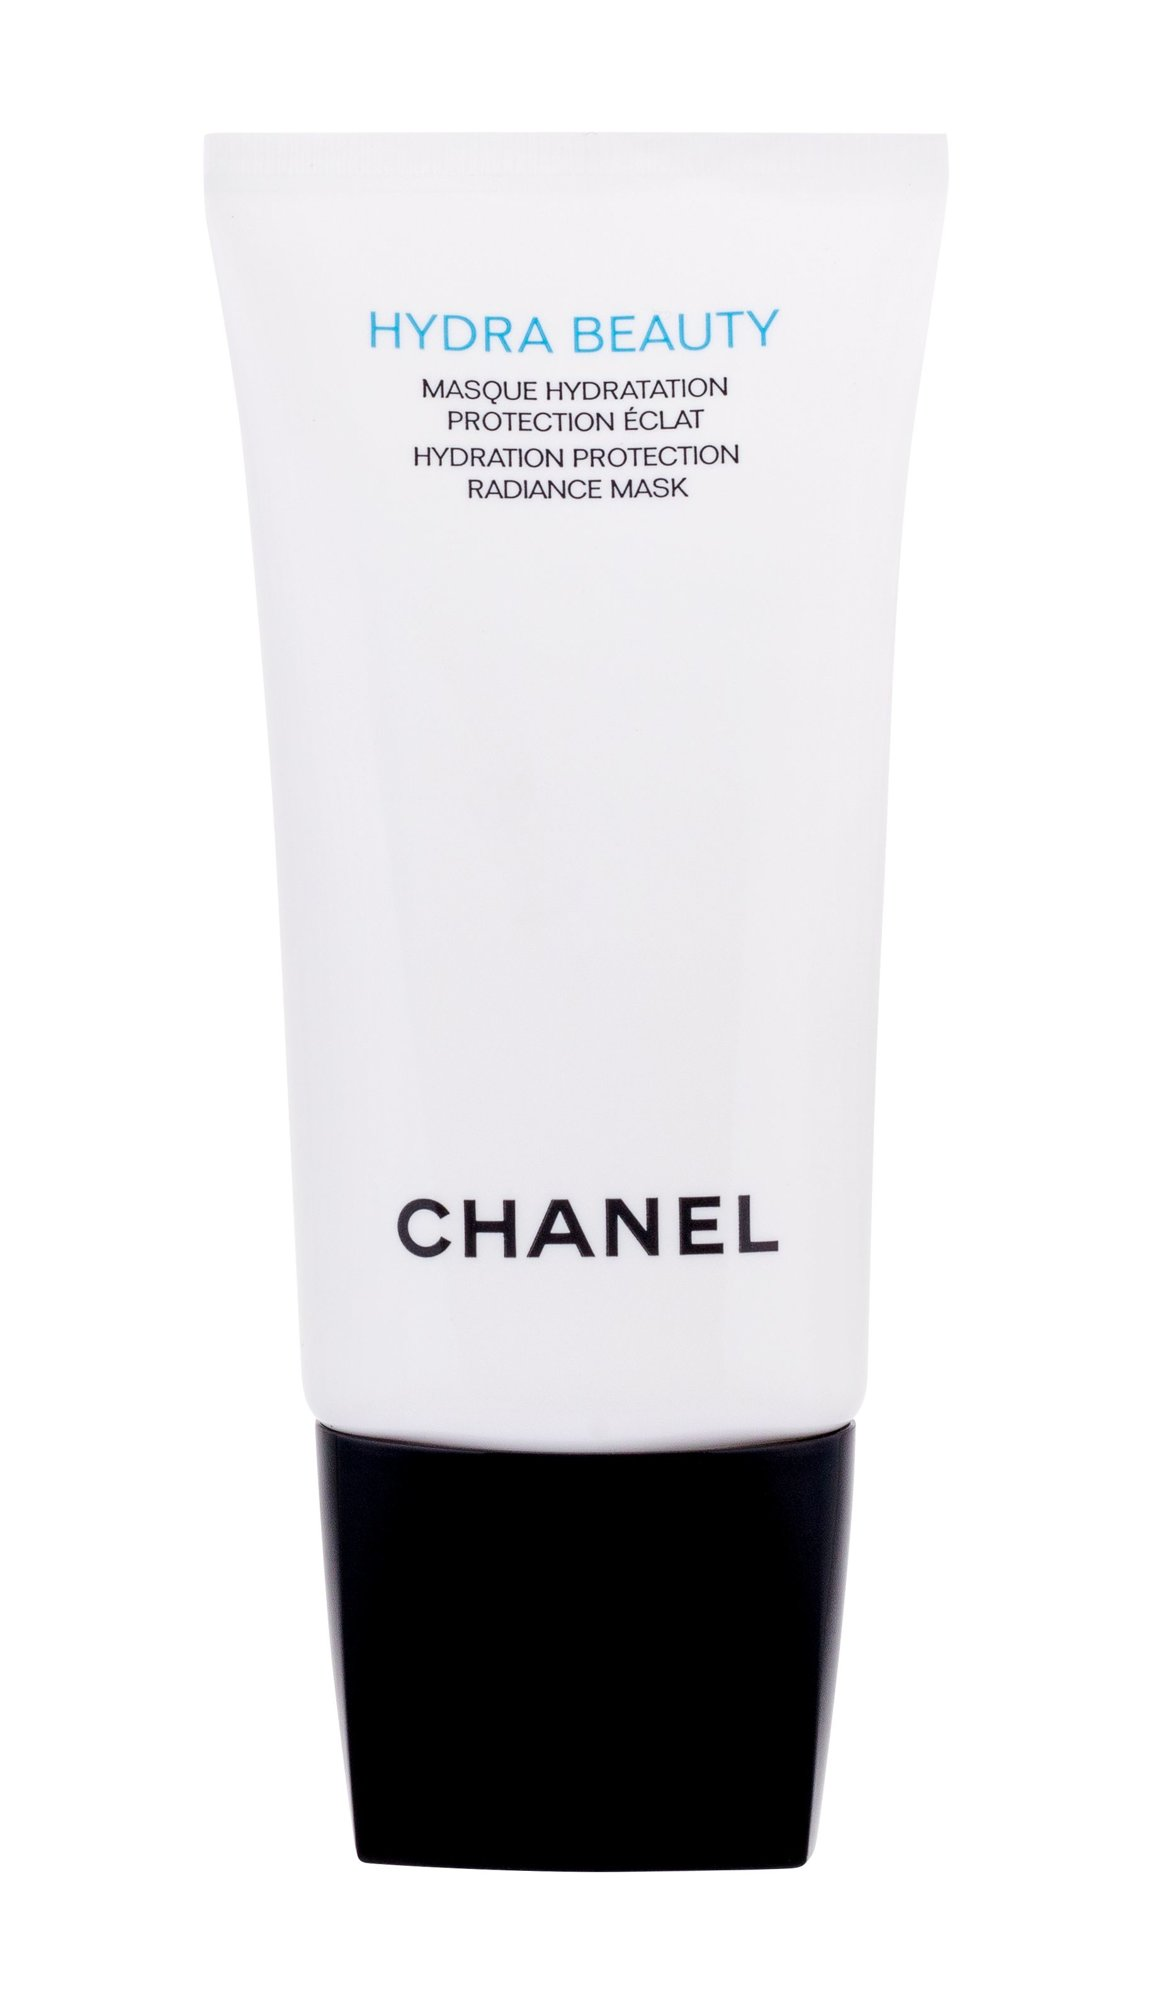 Chanel Hydra Beauty Face Mask 75ml